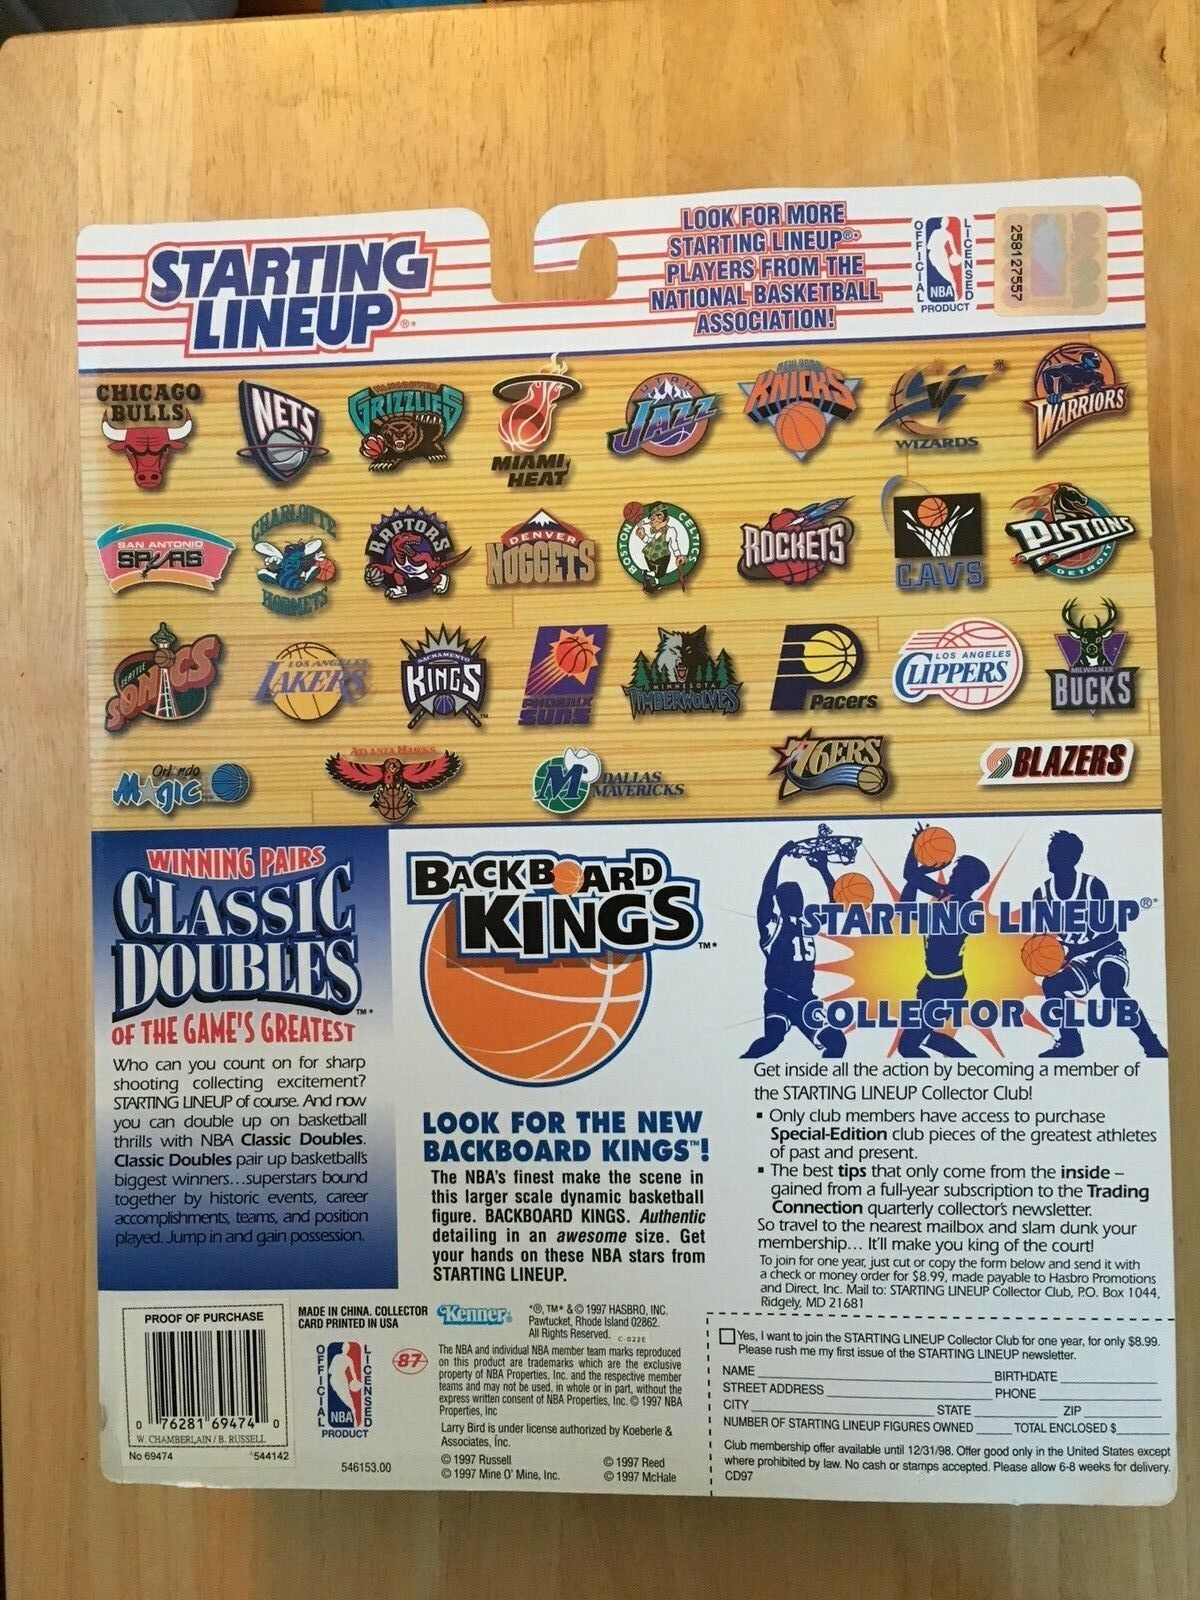 Starting Lineup 1997 Bill Russell Wilt Chamberlin Celtics NBA Classic Doubles